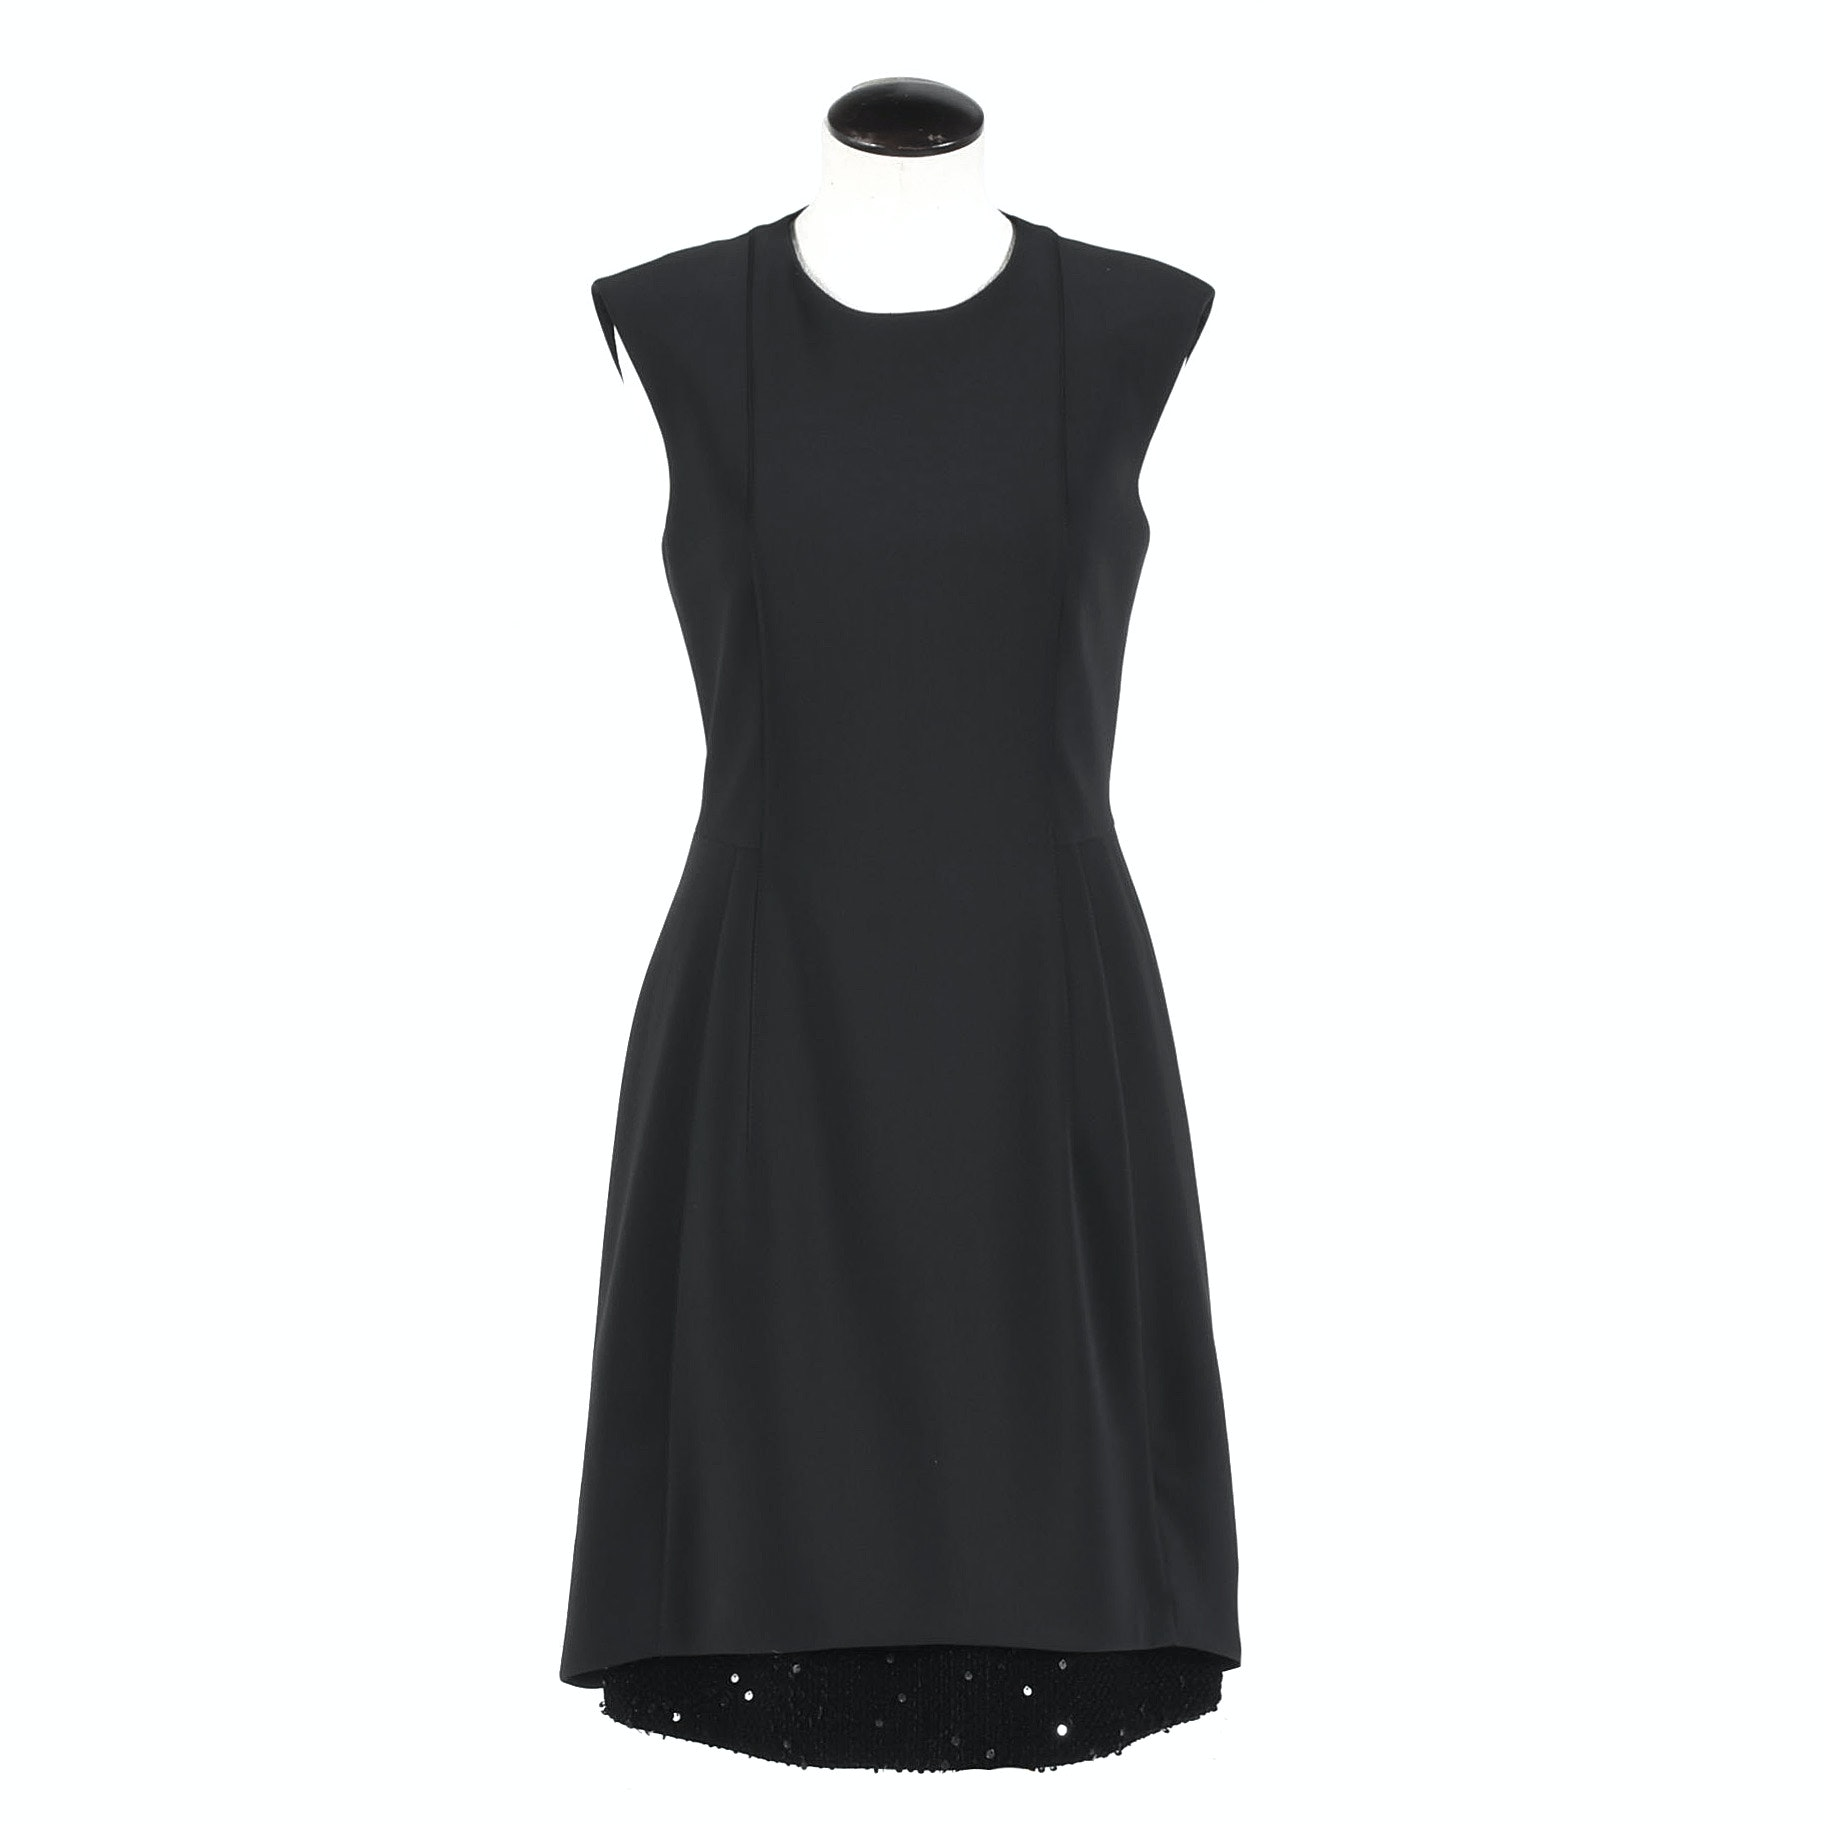 A-K-R-I-S Punto Black Sleeveless Cocktail Dress with Sequined Hemline Detail